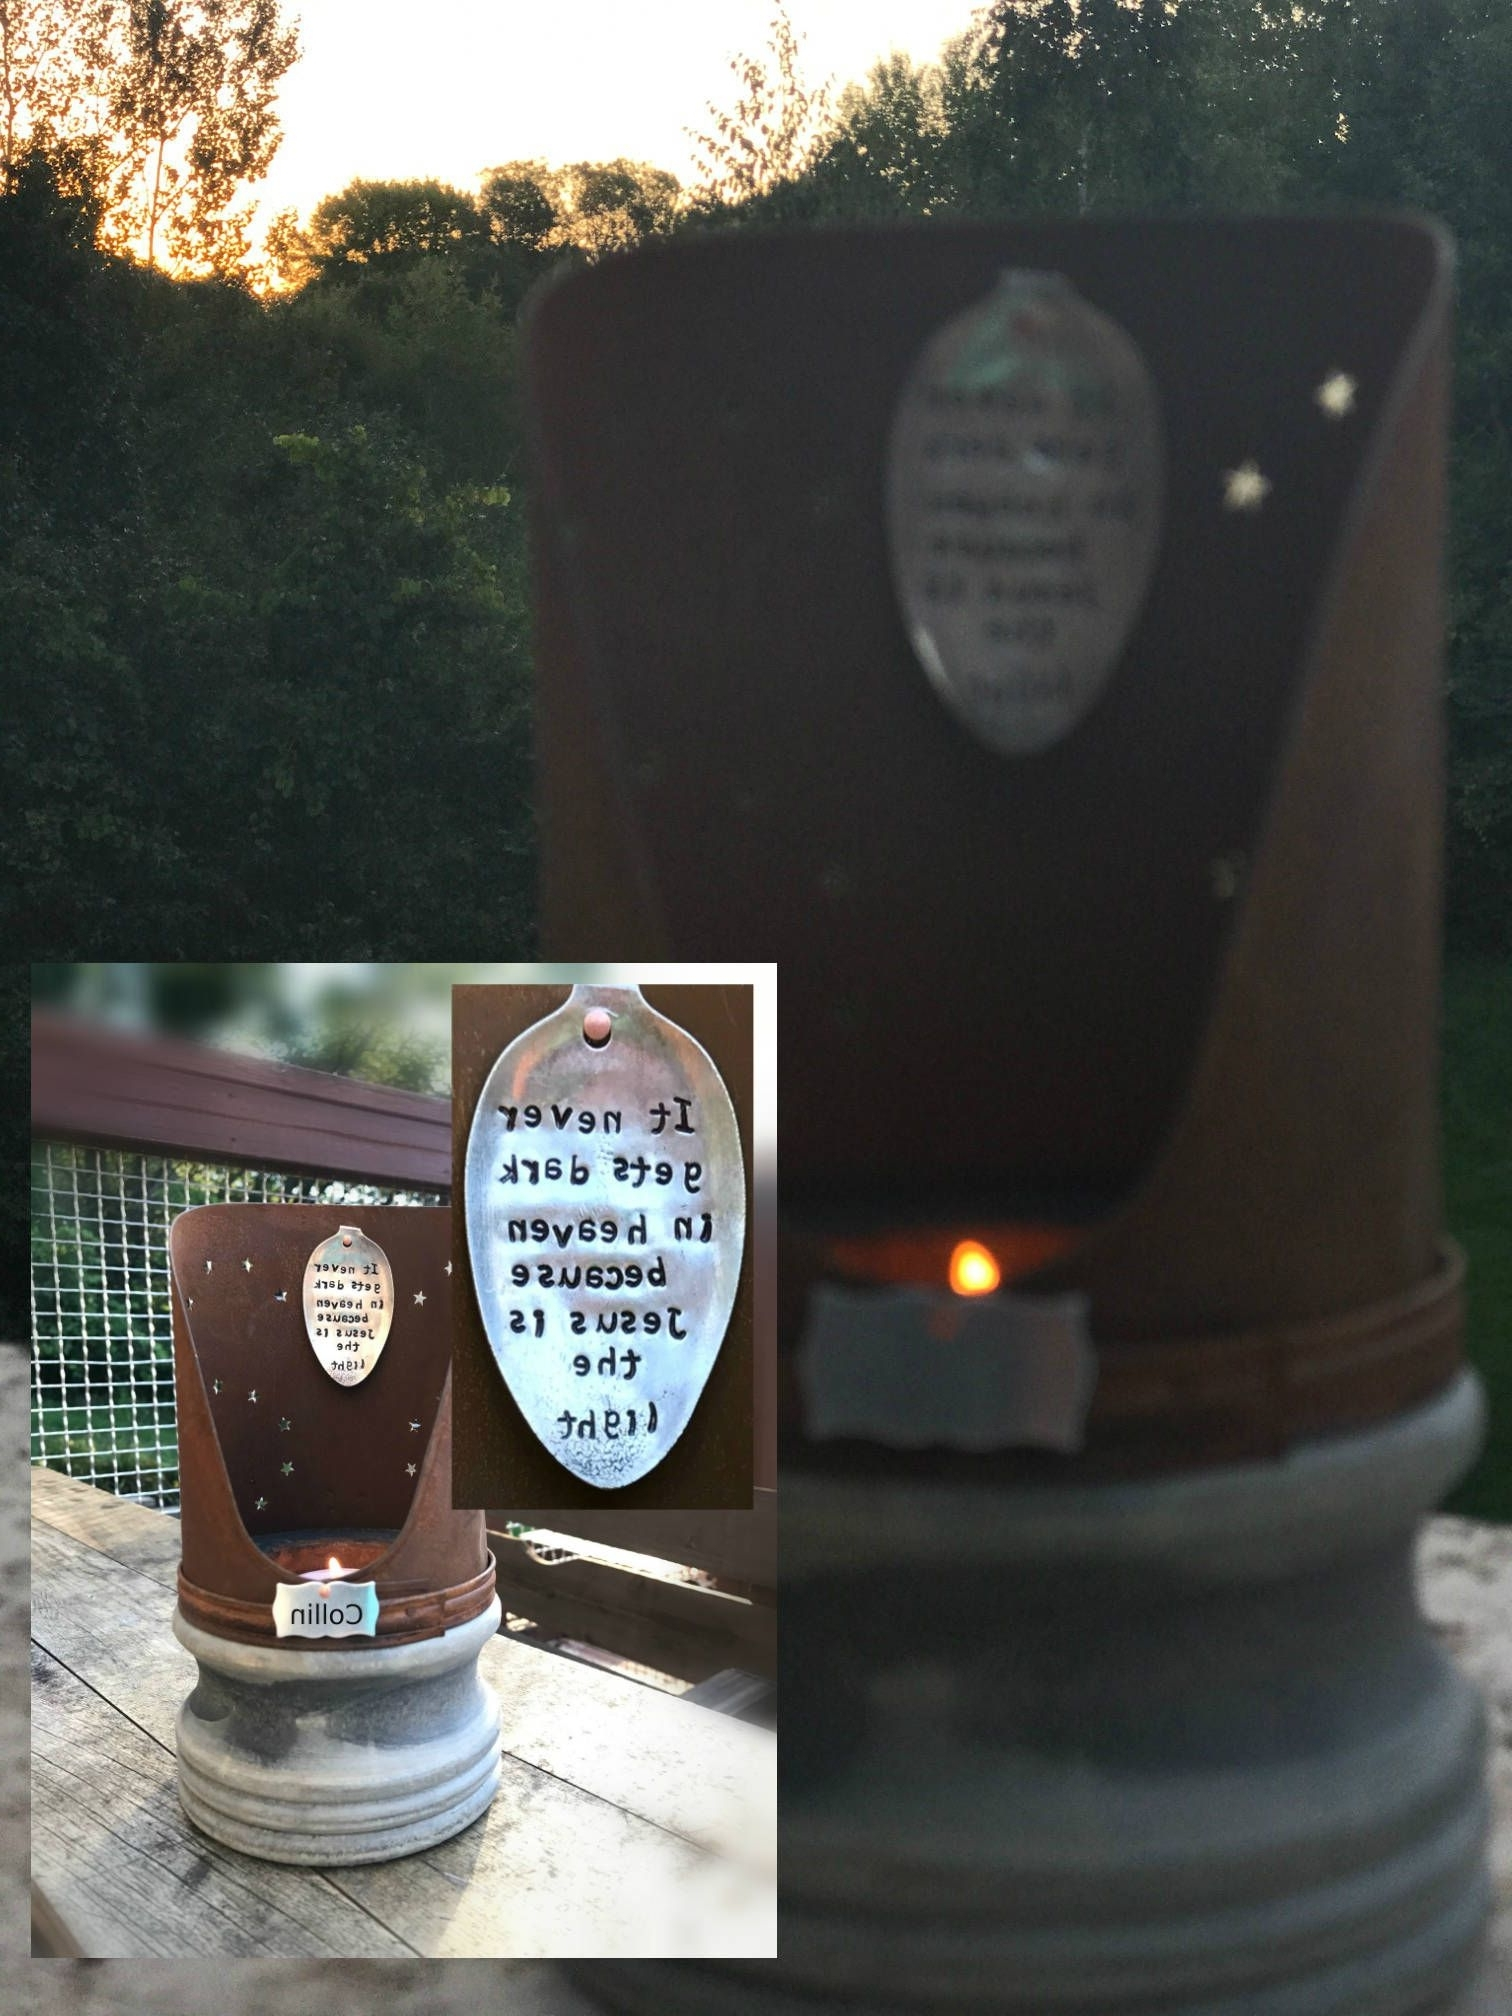 Favorite Memorial Lantern Vintage Inspired Eternal Light Candle Gift Indoor With Regard To Outdoor Memorial Lanterns (View 6 of 20)